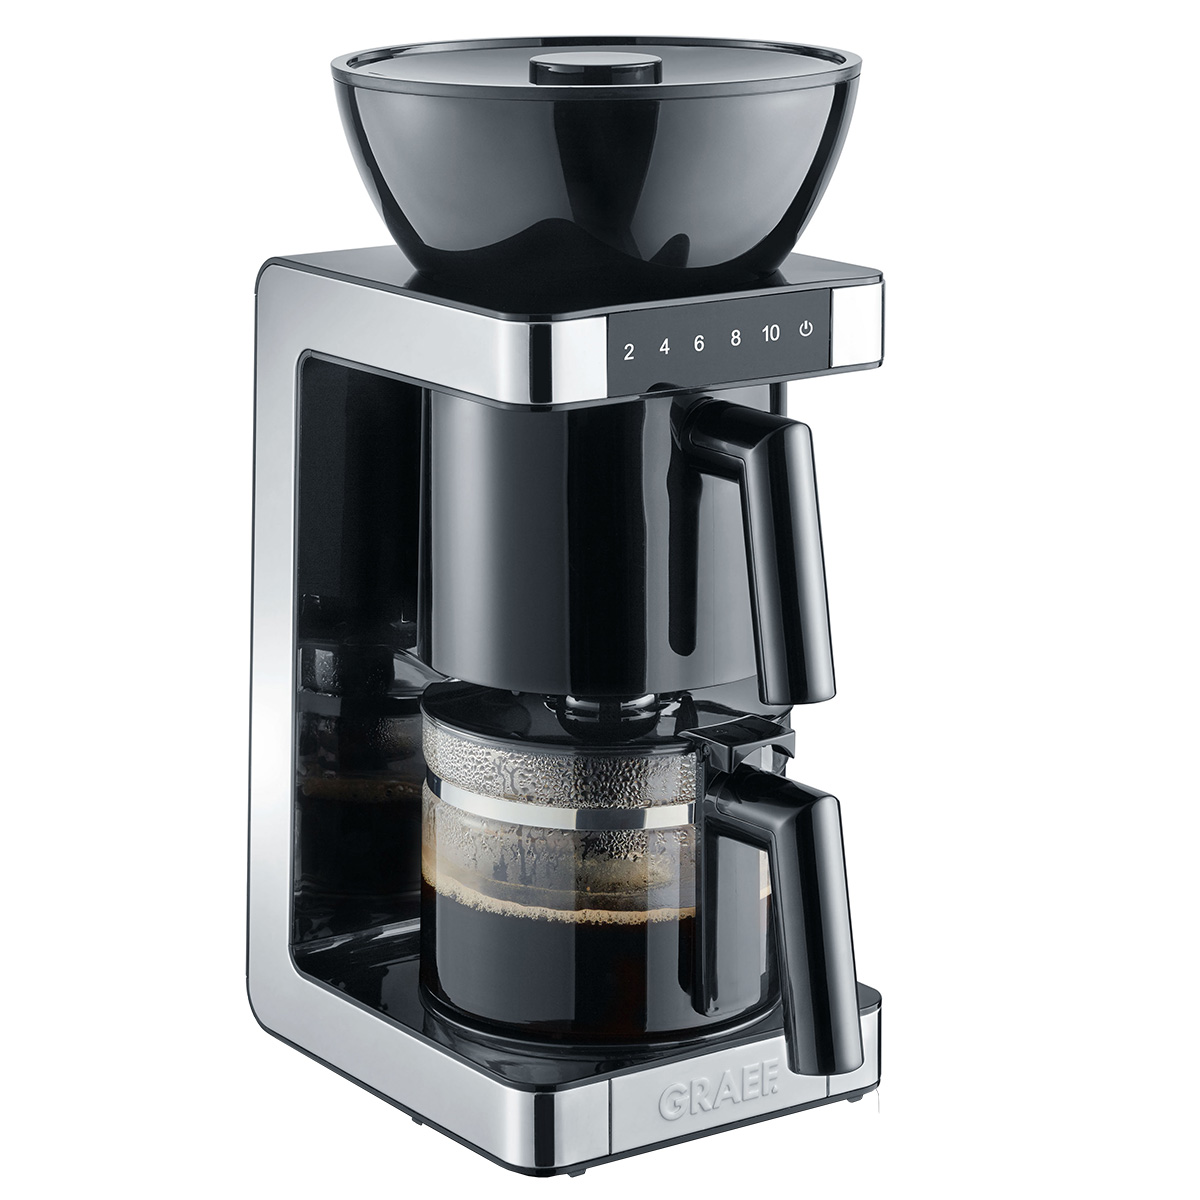 Image of   Graef kaffemaskine - FK 702 - Sort